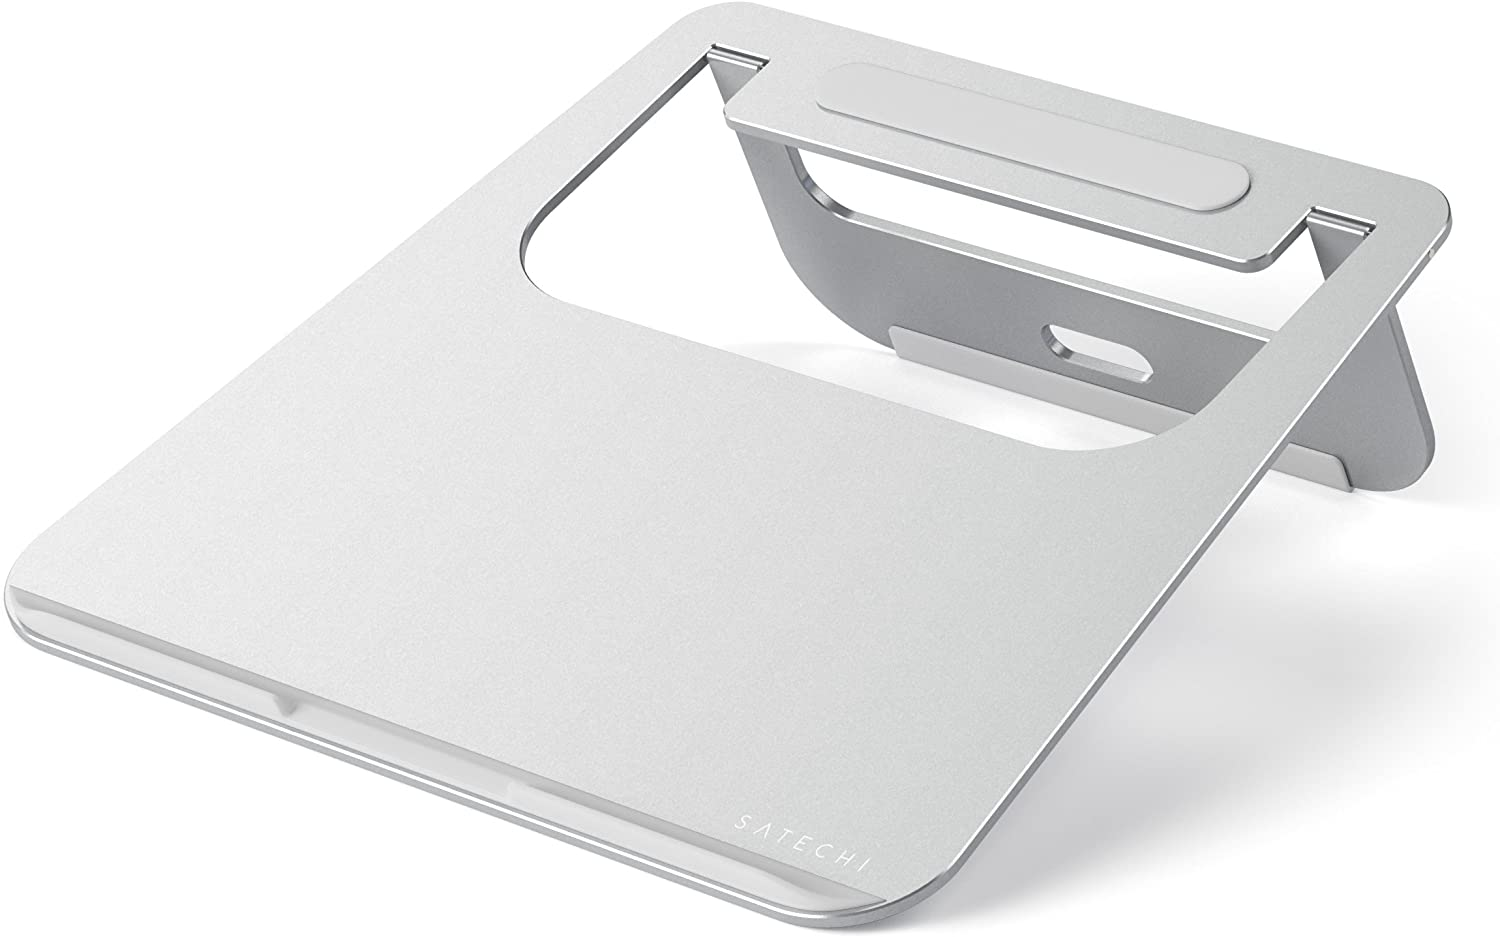 Satechi Lightweight Aluminum Portable Laptop Stand - Compatible with MacBook, MacBook Pro, Microsoft Surface Pro and more (Silver)